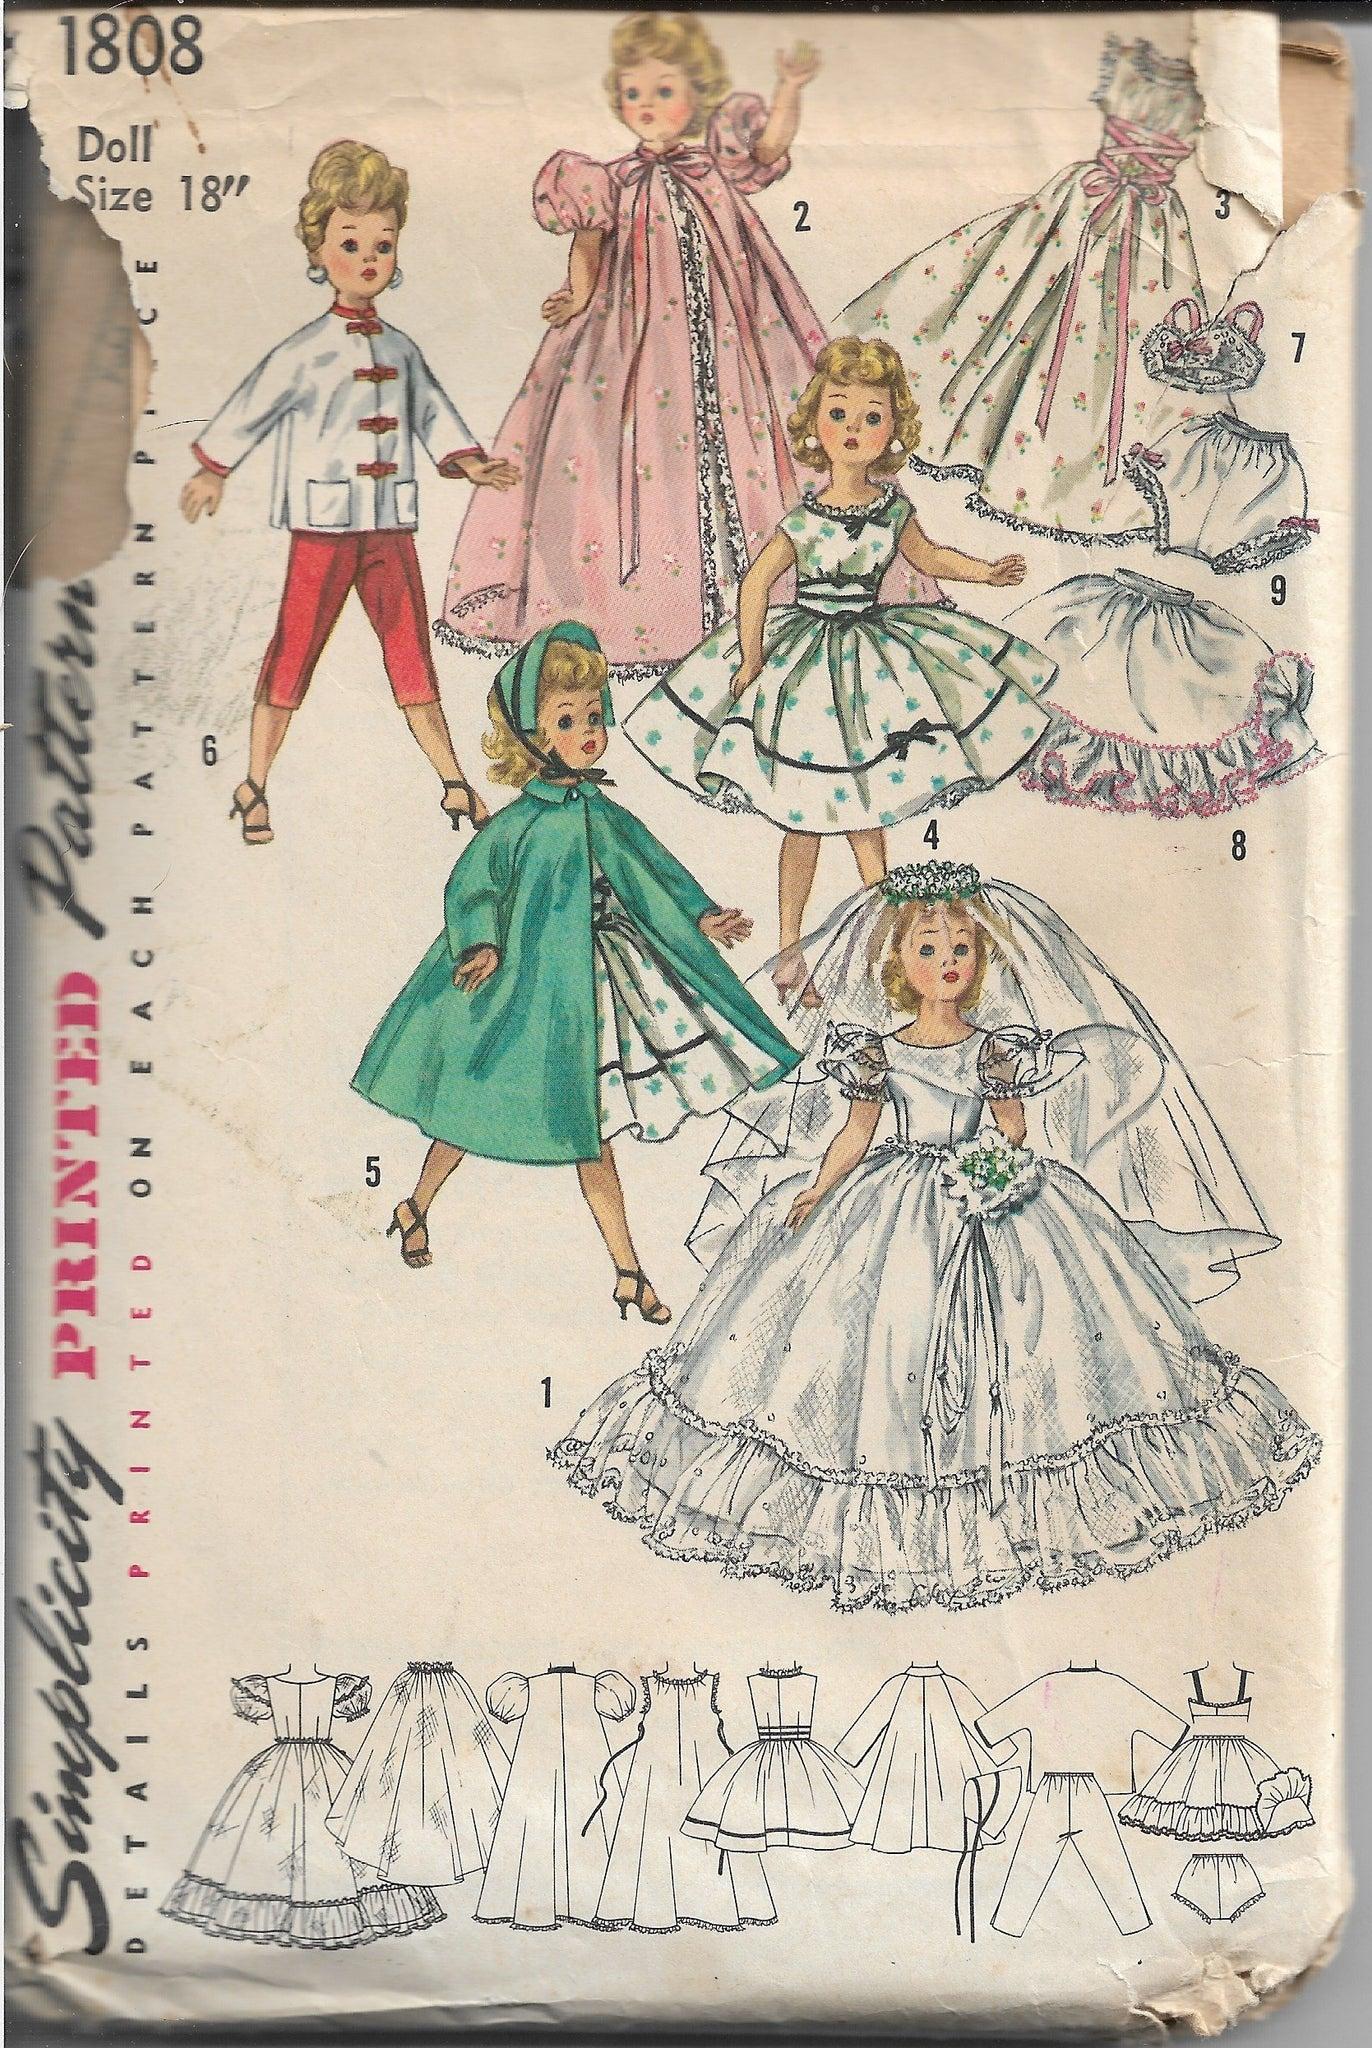 Simplicity 1808 Doll Clothing Vintage Sewing Pattern 1950s - VintageStitching - Vintage Sewing Patterns